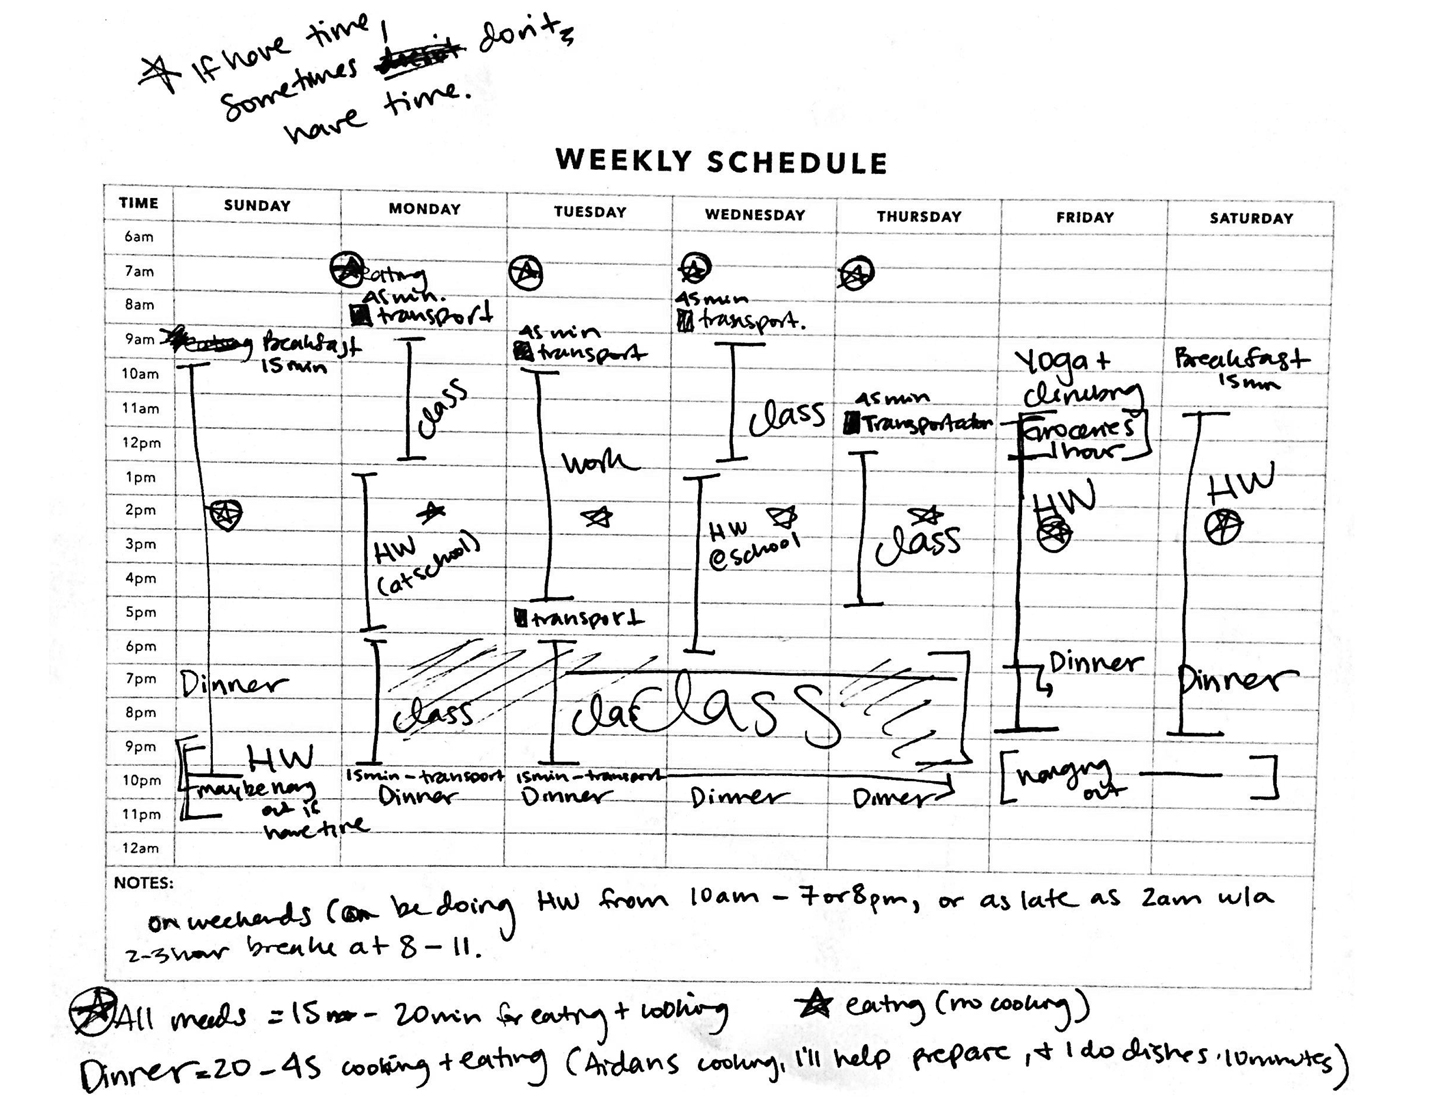 Weekly schedule of a busy student being interviewed for CampusEats research